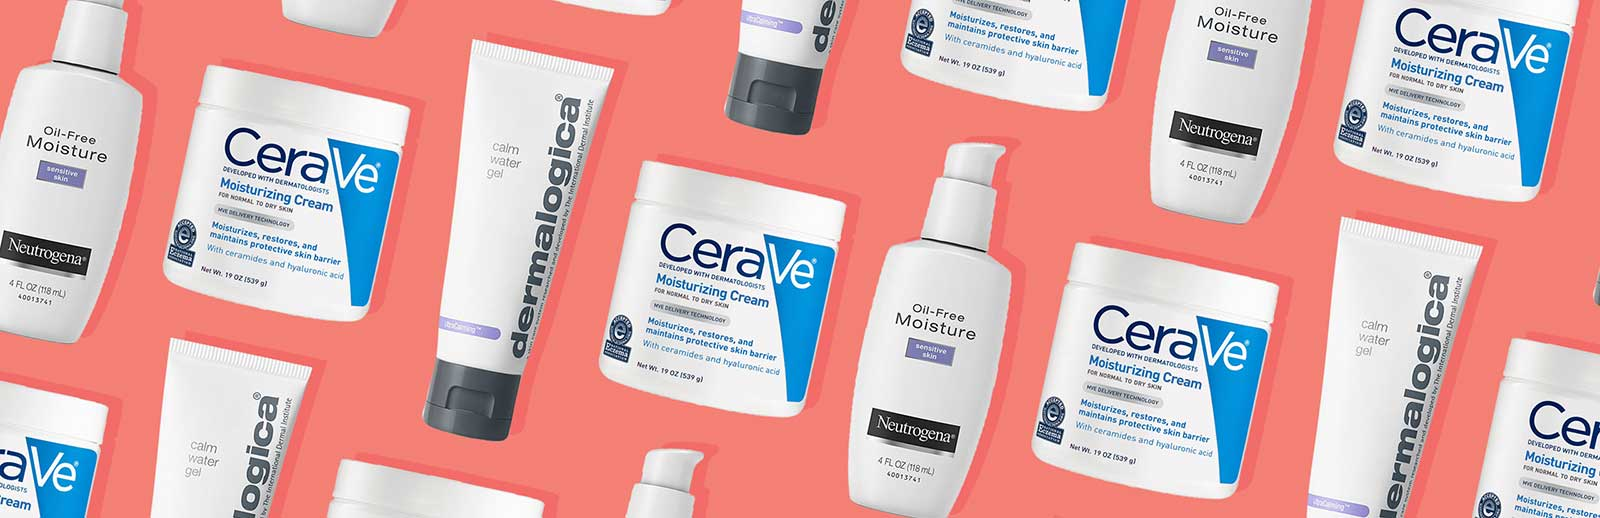 Best Moisturizers for Rosacea Recommended by Dermatologists